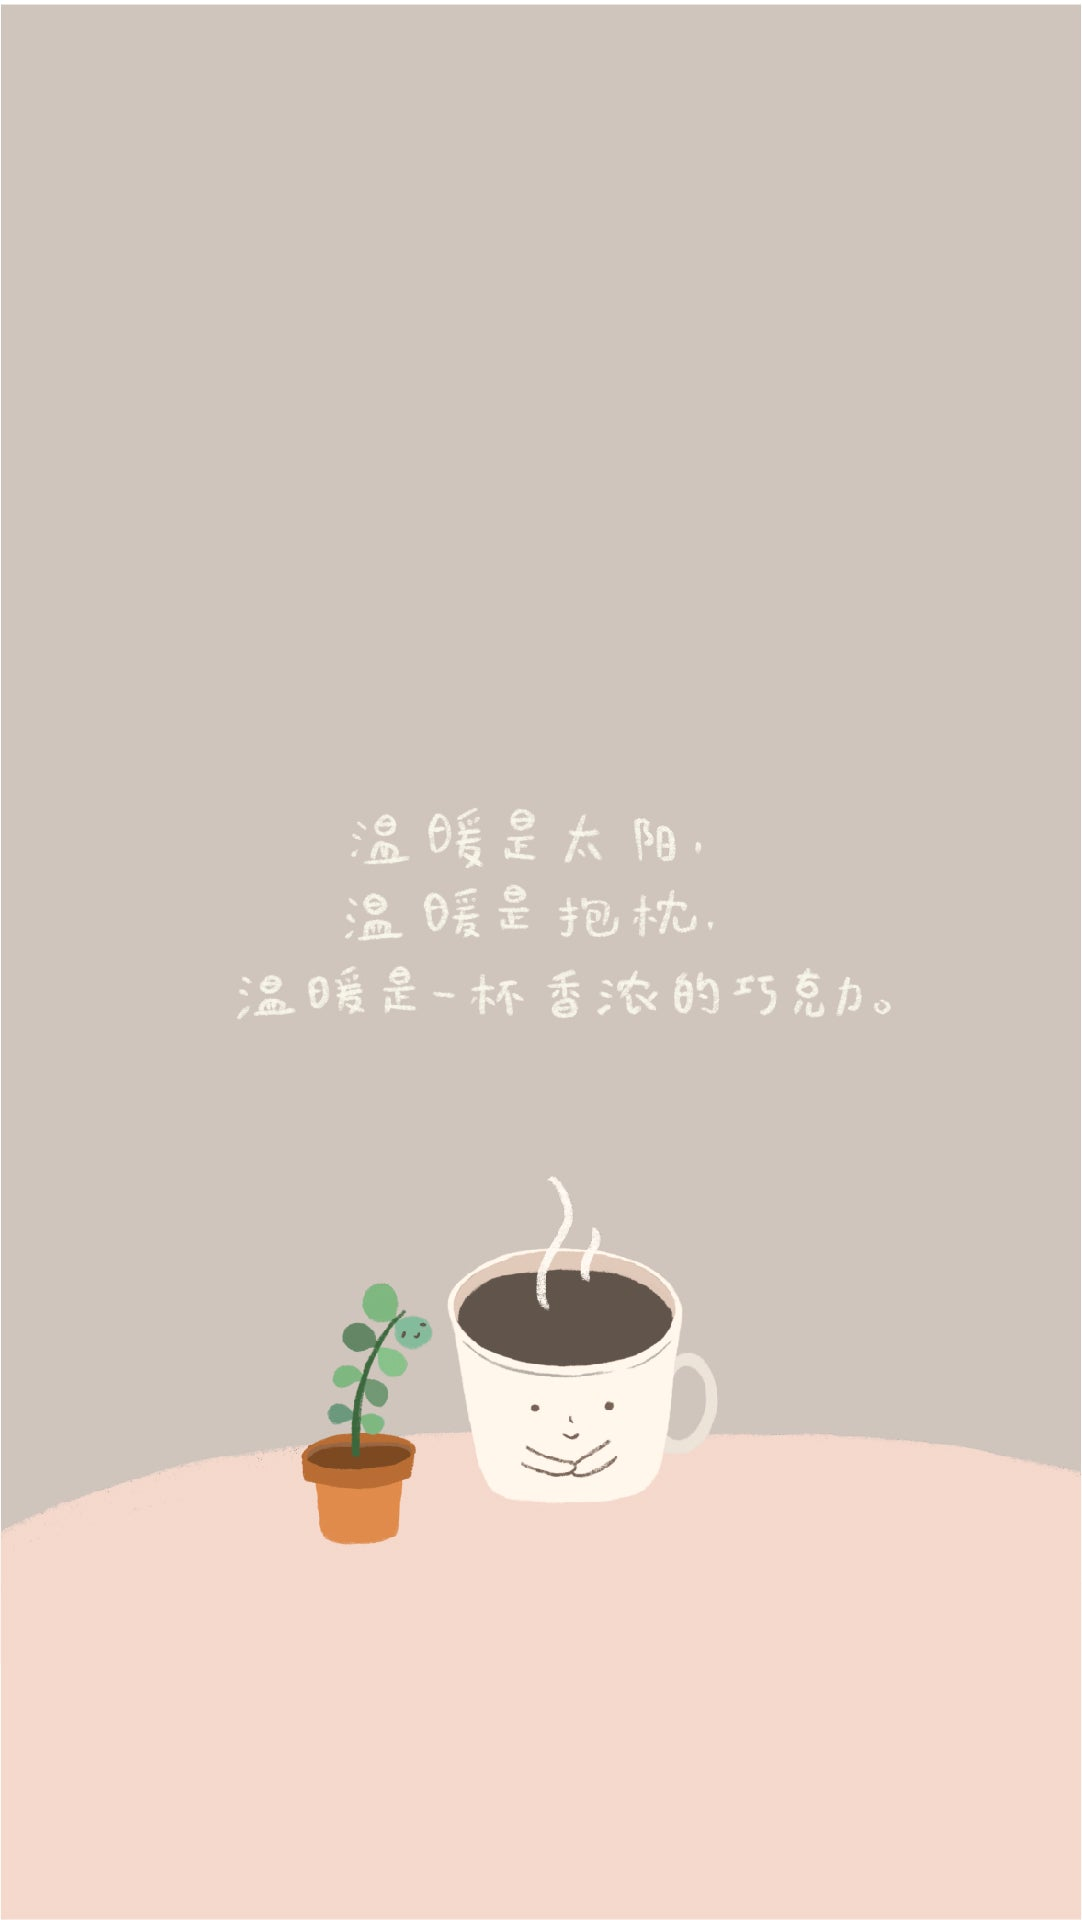 phone wallpaper of a digital illustration of a chinese quote about having peace and warmth in the morning with a cup of hot chocolate